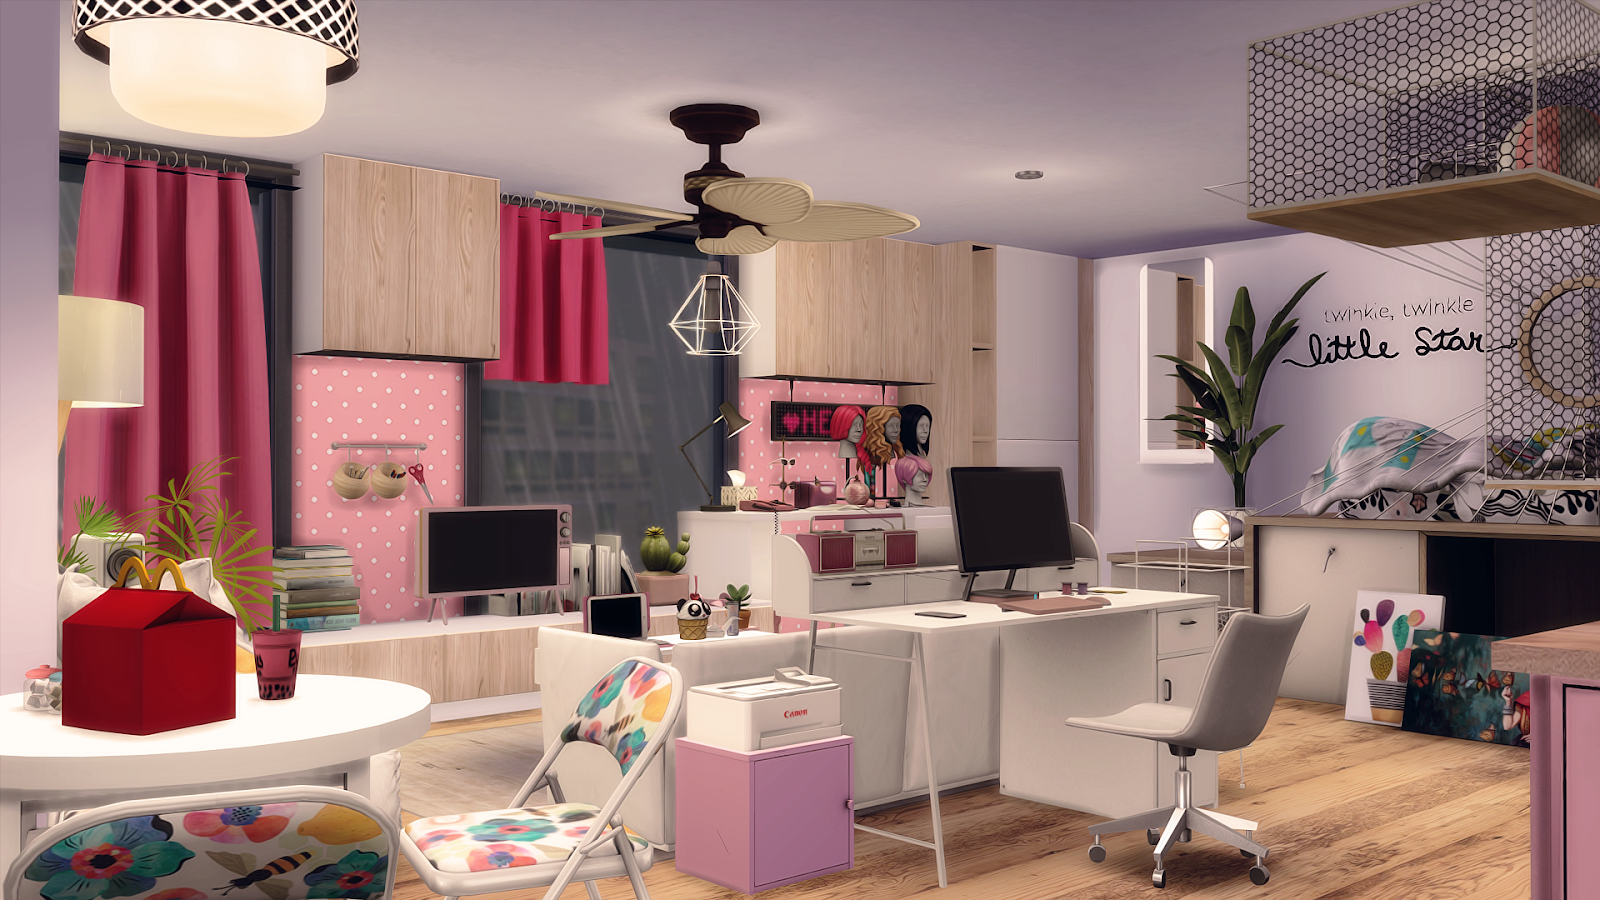 63   MY FIRST APARTMENT -1312 21 CHIC STREET 🎀 ~ Soulsistersims